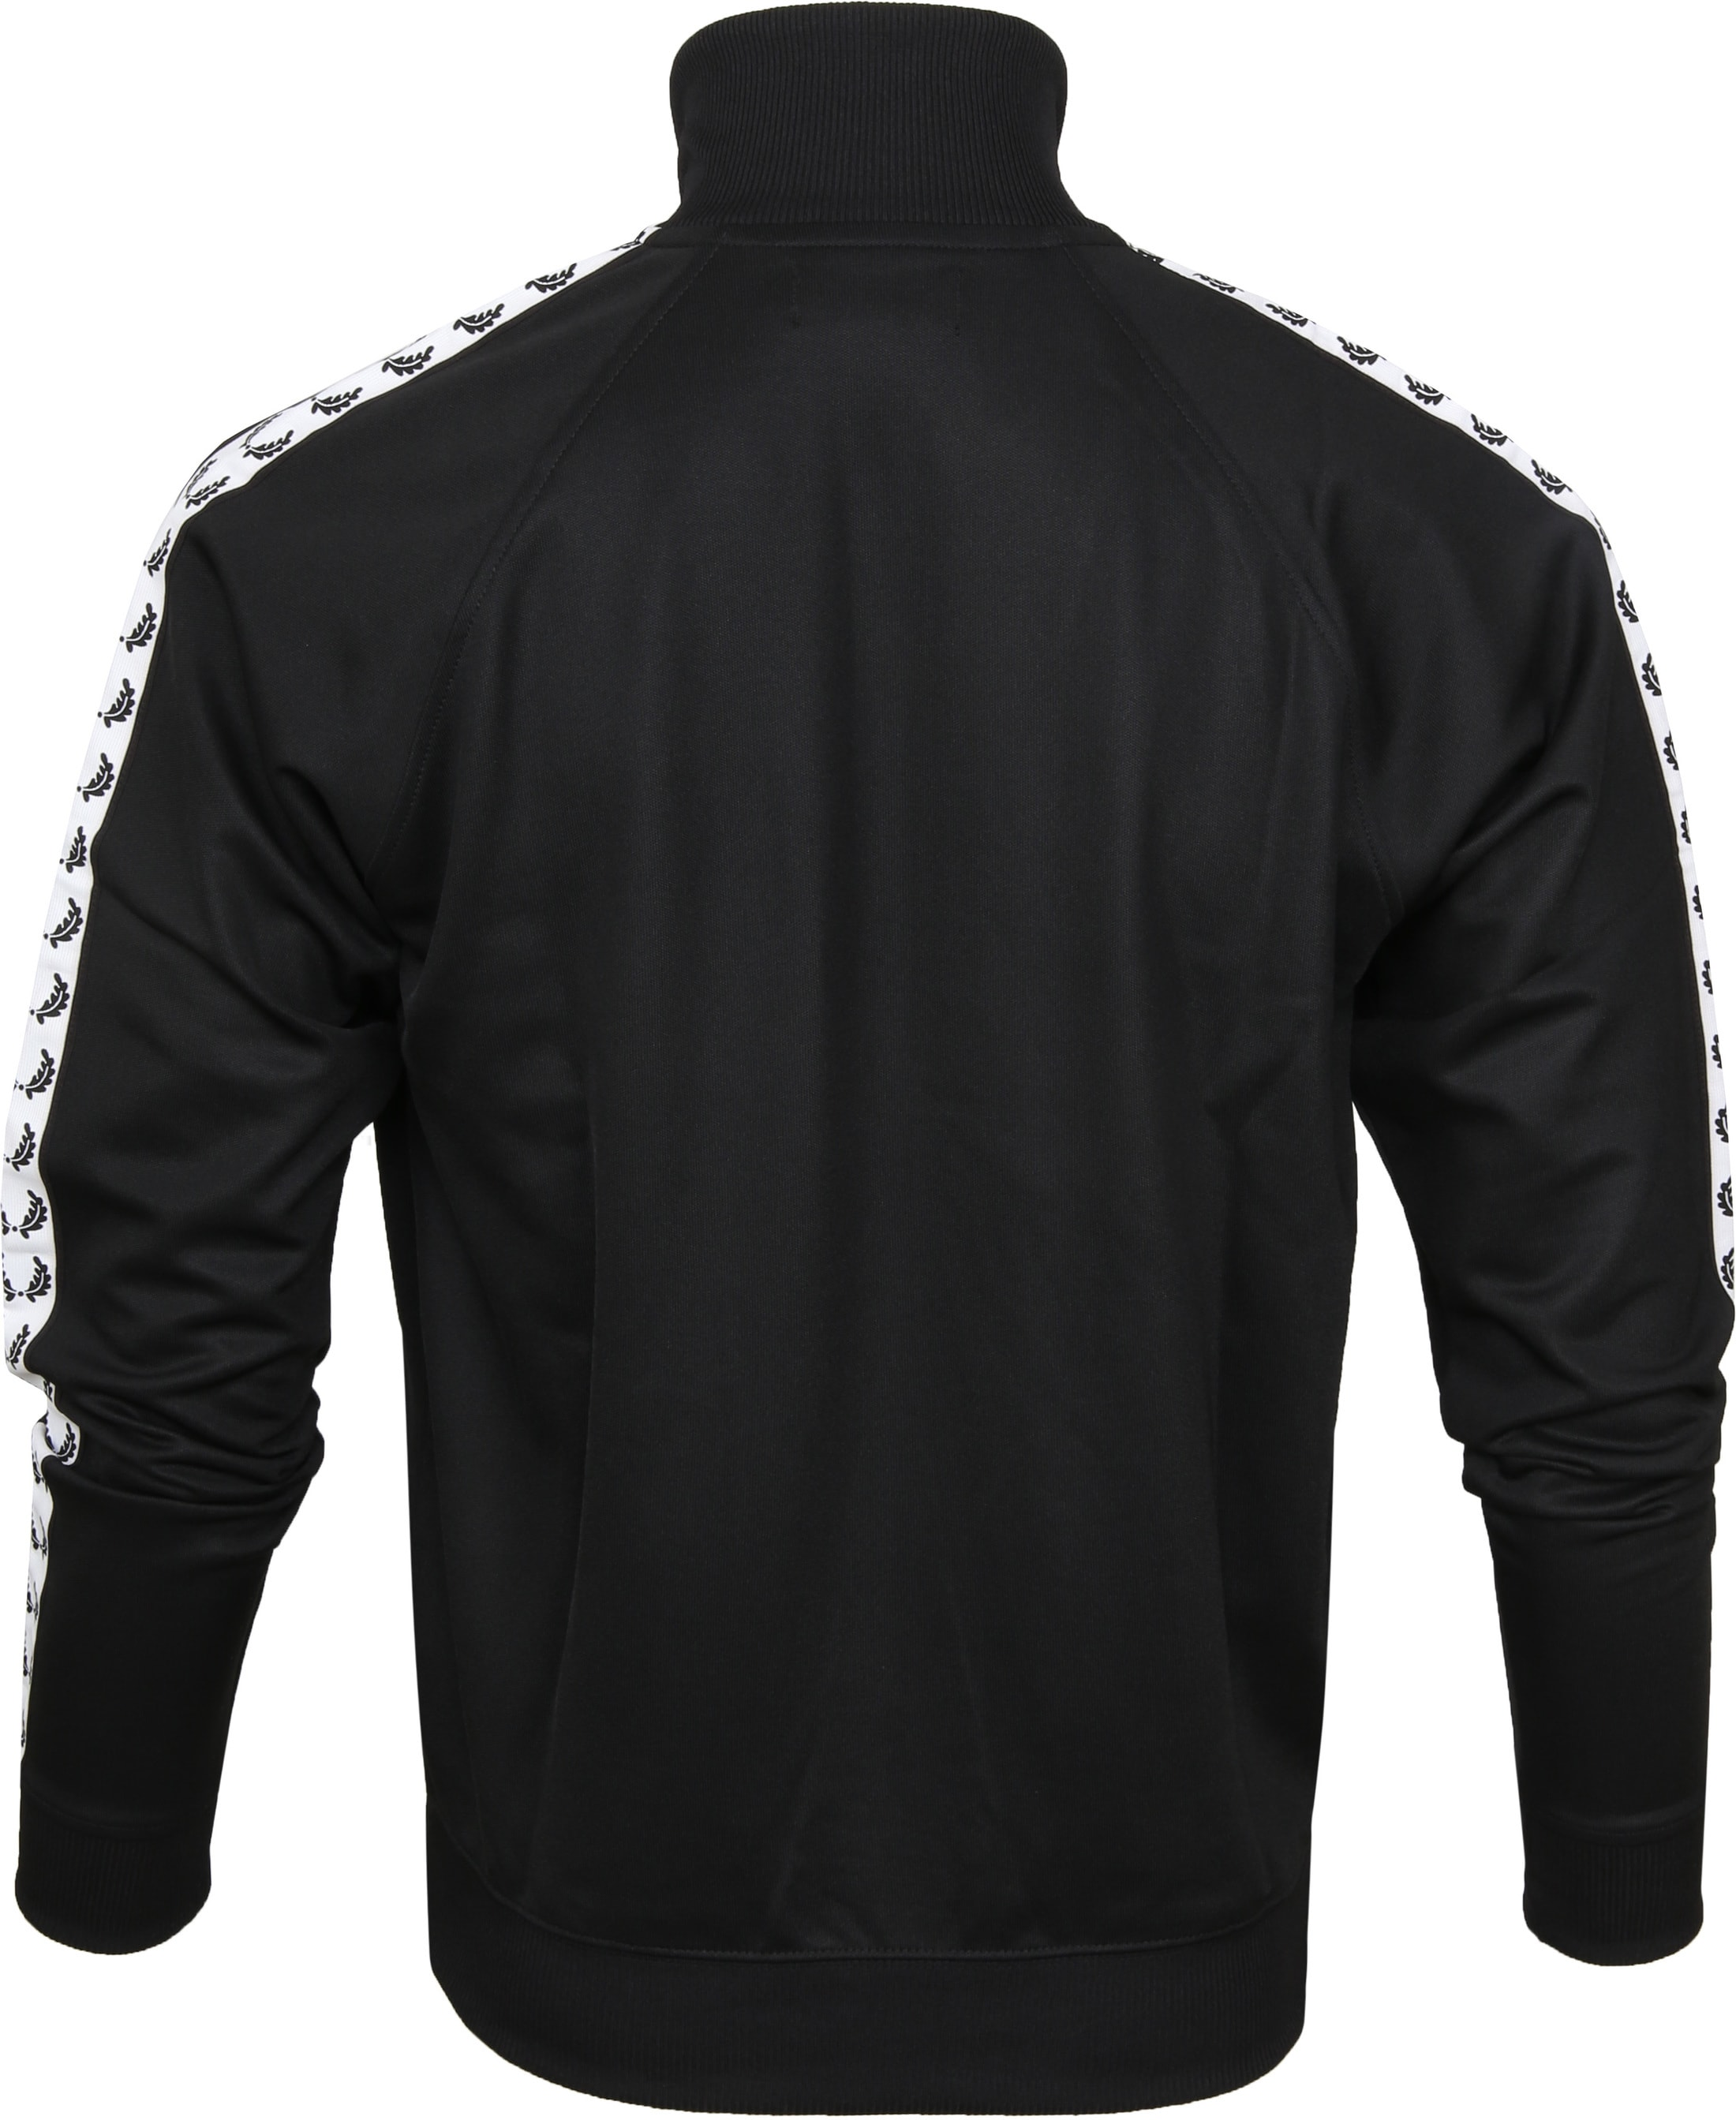 Fred Perry Taped Track Jacket Zwart foto 4